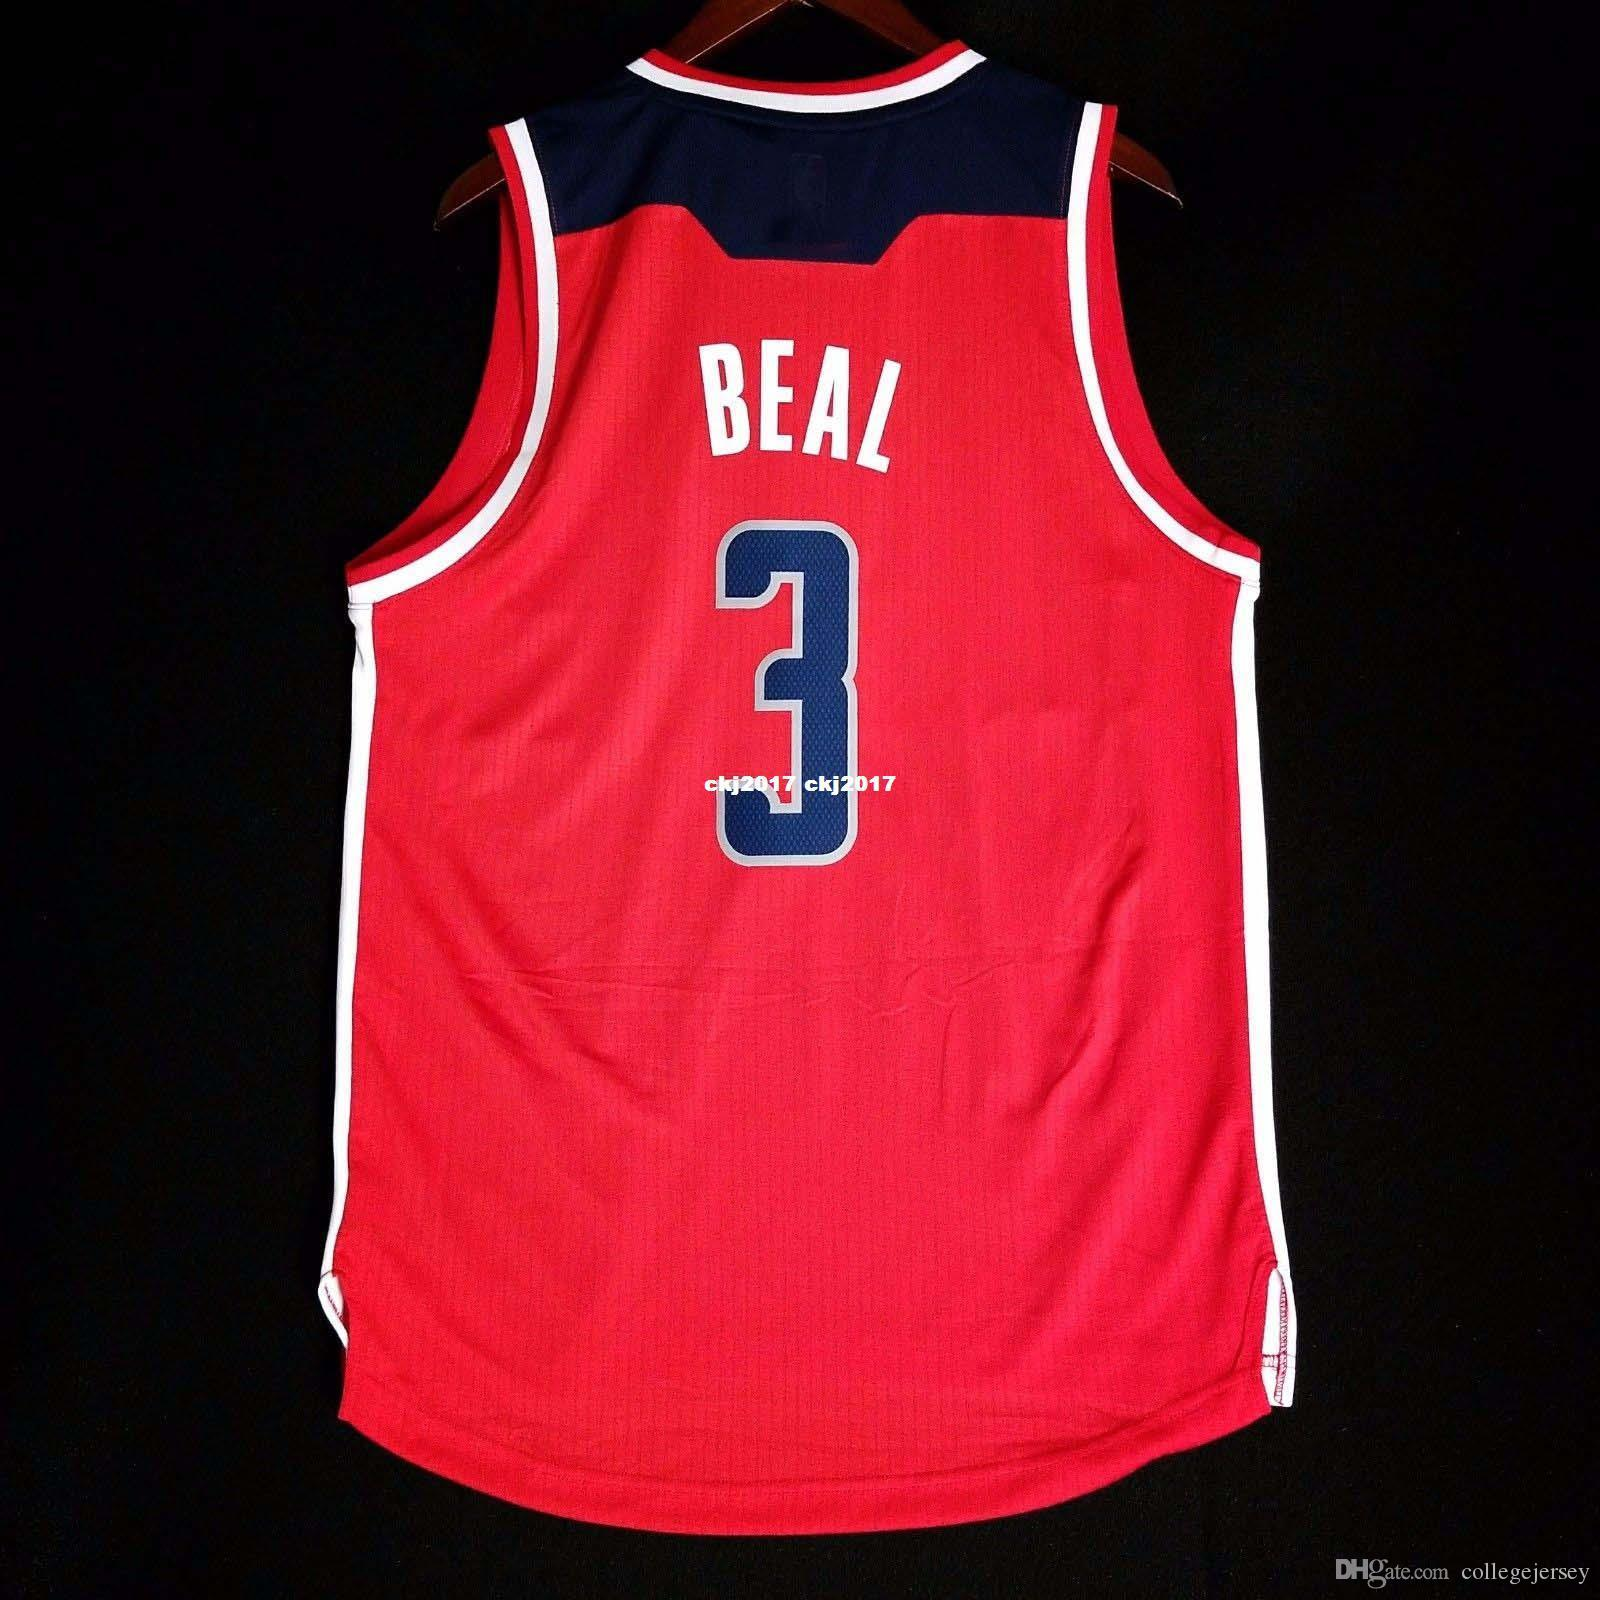 100% cousu Bradley Beal cousu maillot Jersey mur rouge john Mens Vest Taille XS-6XL maillots de basket-ball cousu